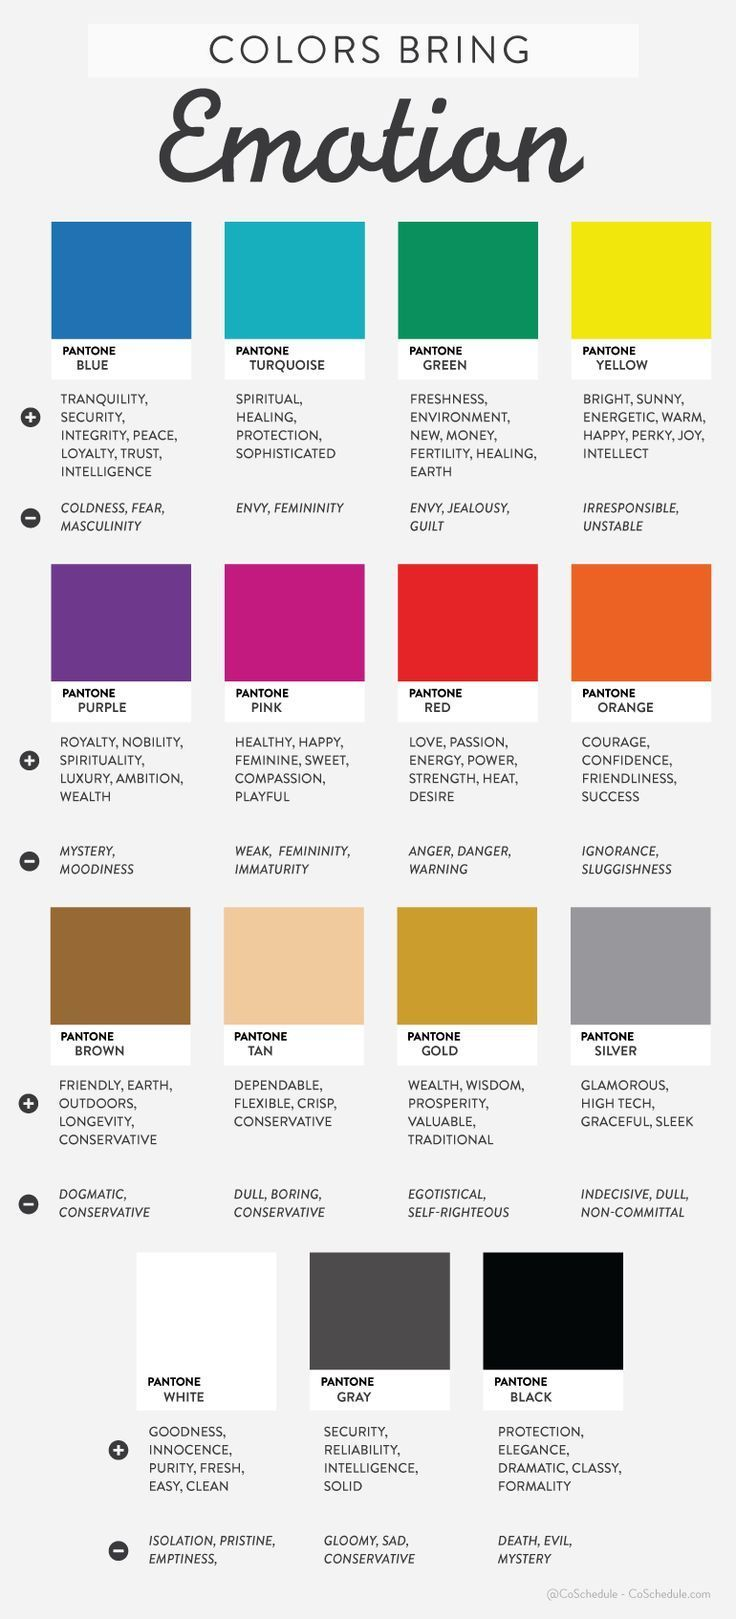 The psychology behind colors and their effects on modern web the psychology behind colors and their effects on modern web designs color meanings symbols and spiritual candles nvjuhfo Image collections